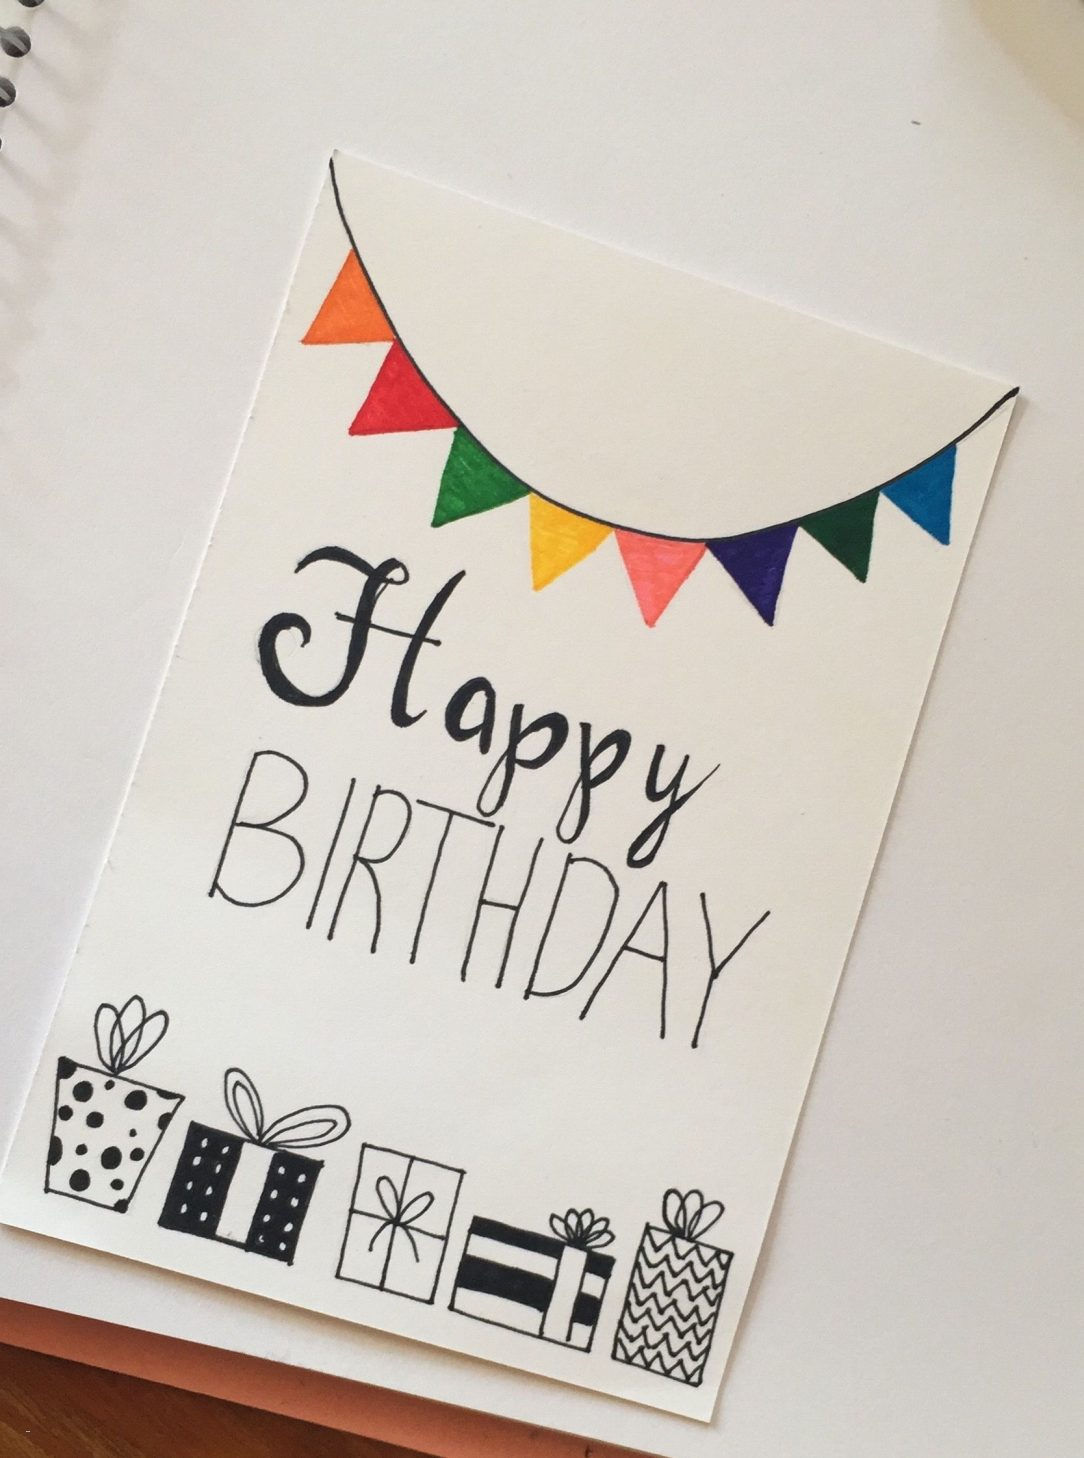 Birthday Card Ideas For Mother Simple Birthday Cards For Mother Homemade In Law Mom Envelopes Ideas